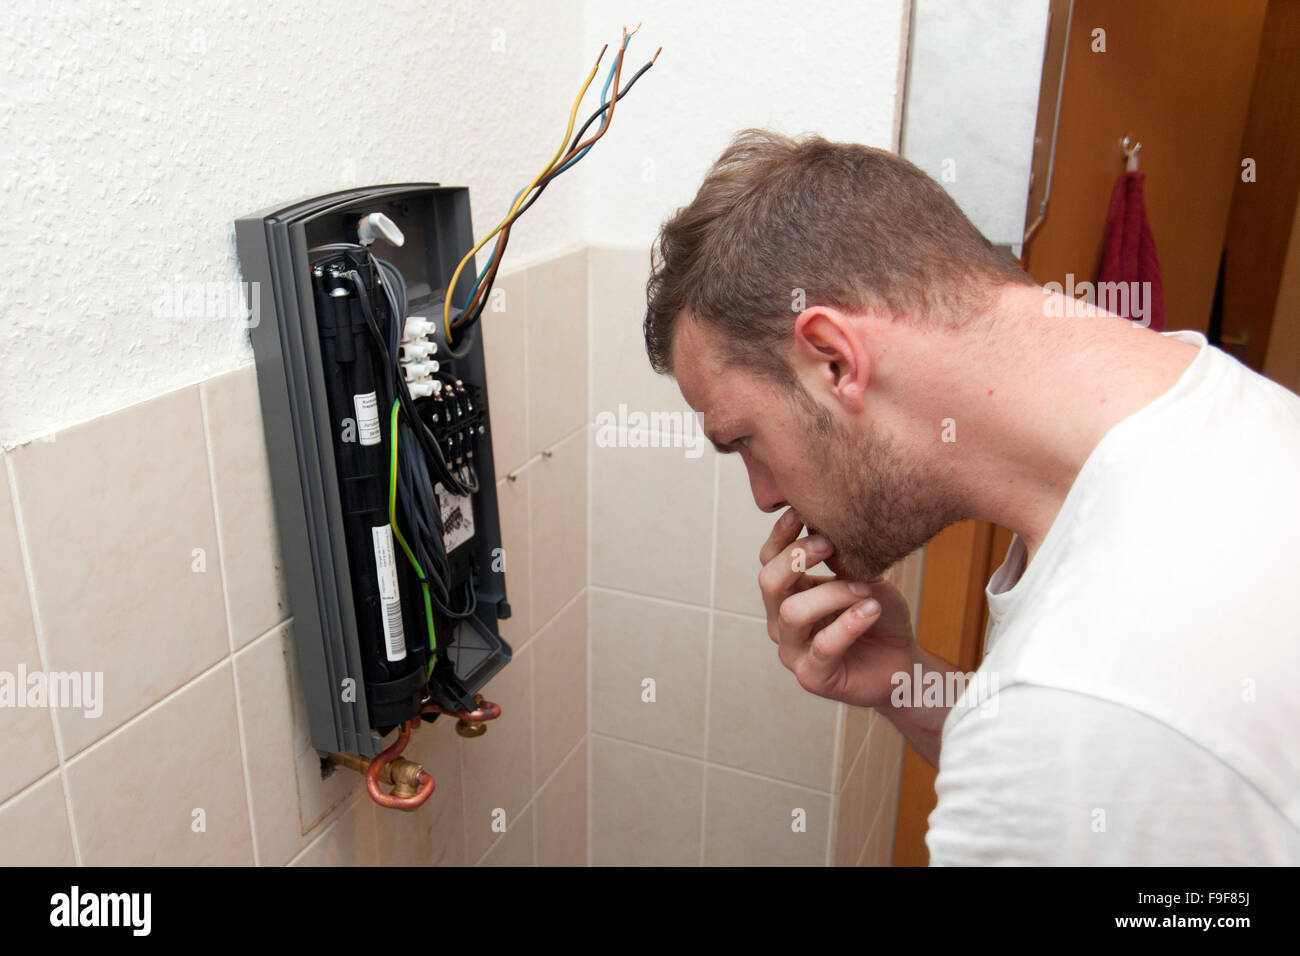 Plumber Attaches A Continuous Flow Water Heater In The Bathroom Wiring Circuit